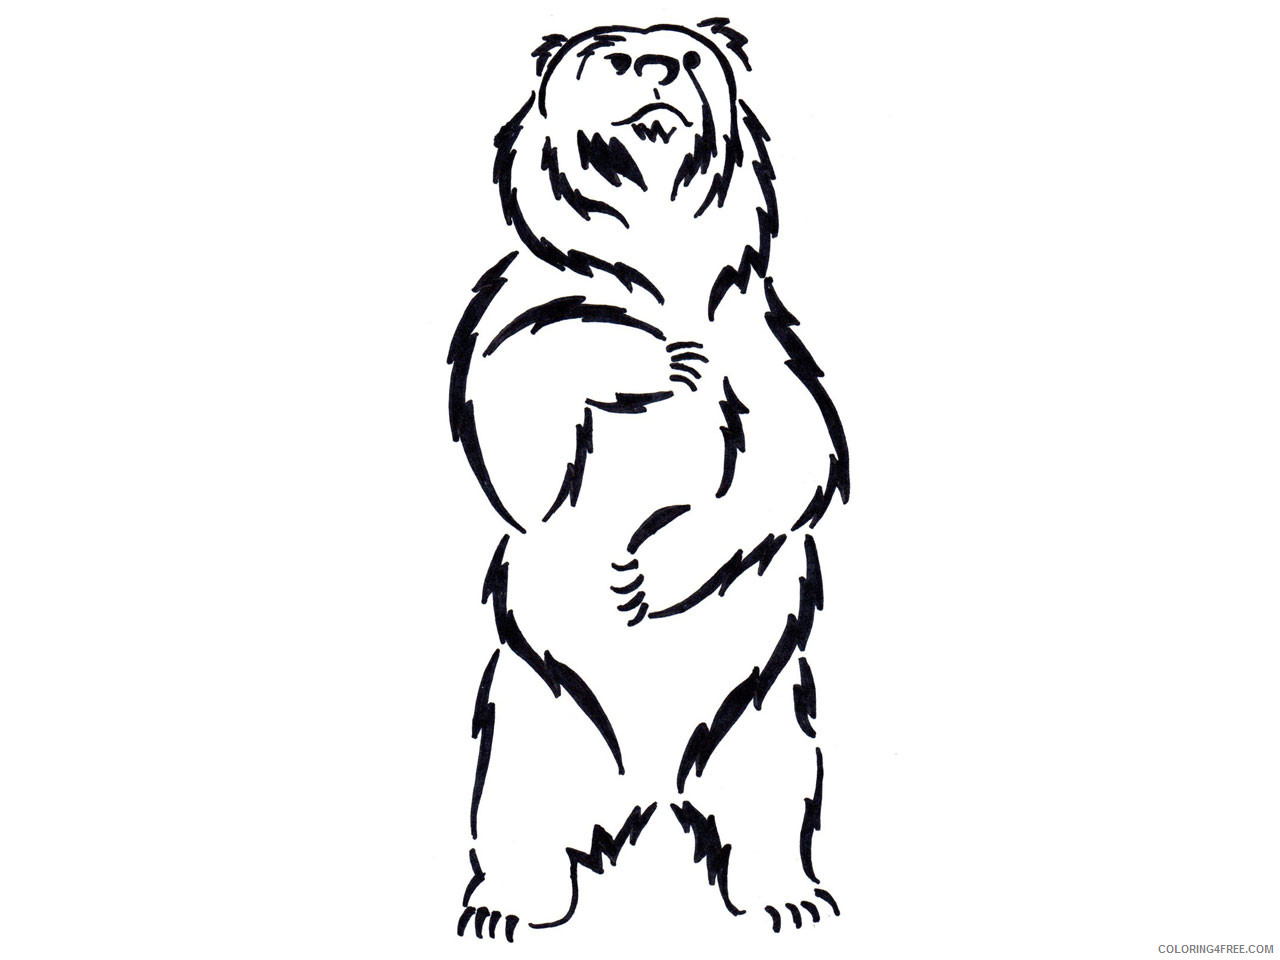 Black Bear Coloring Pages standing black bear drawing Printable Coloring4free